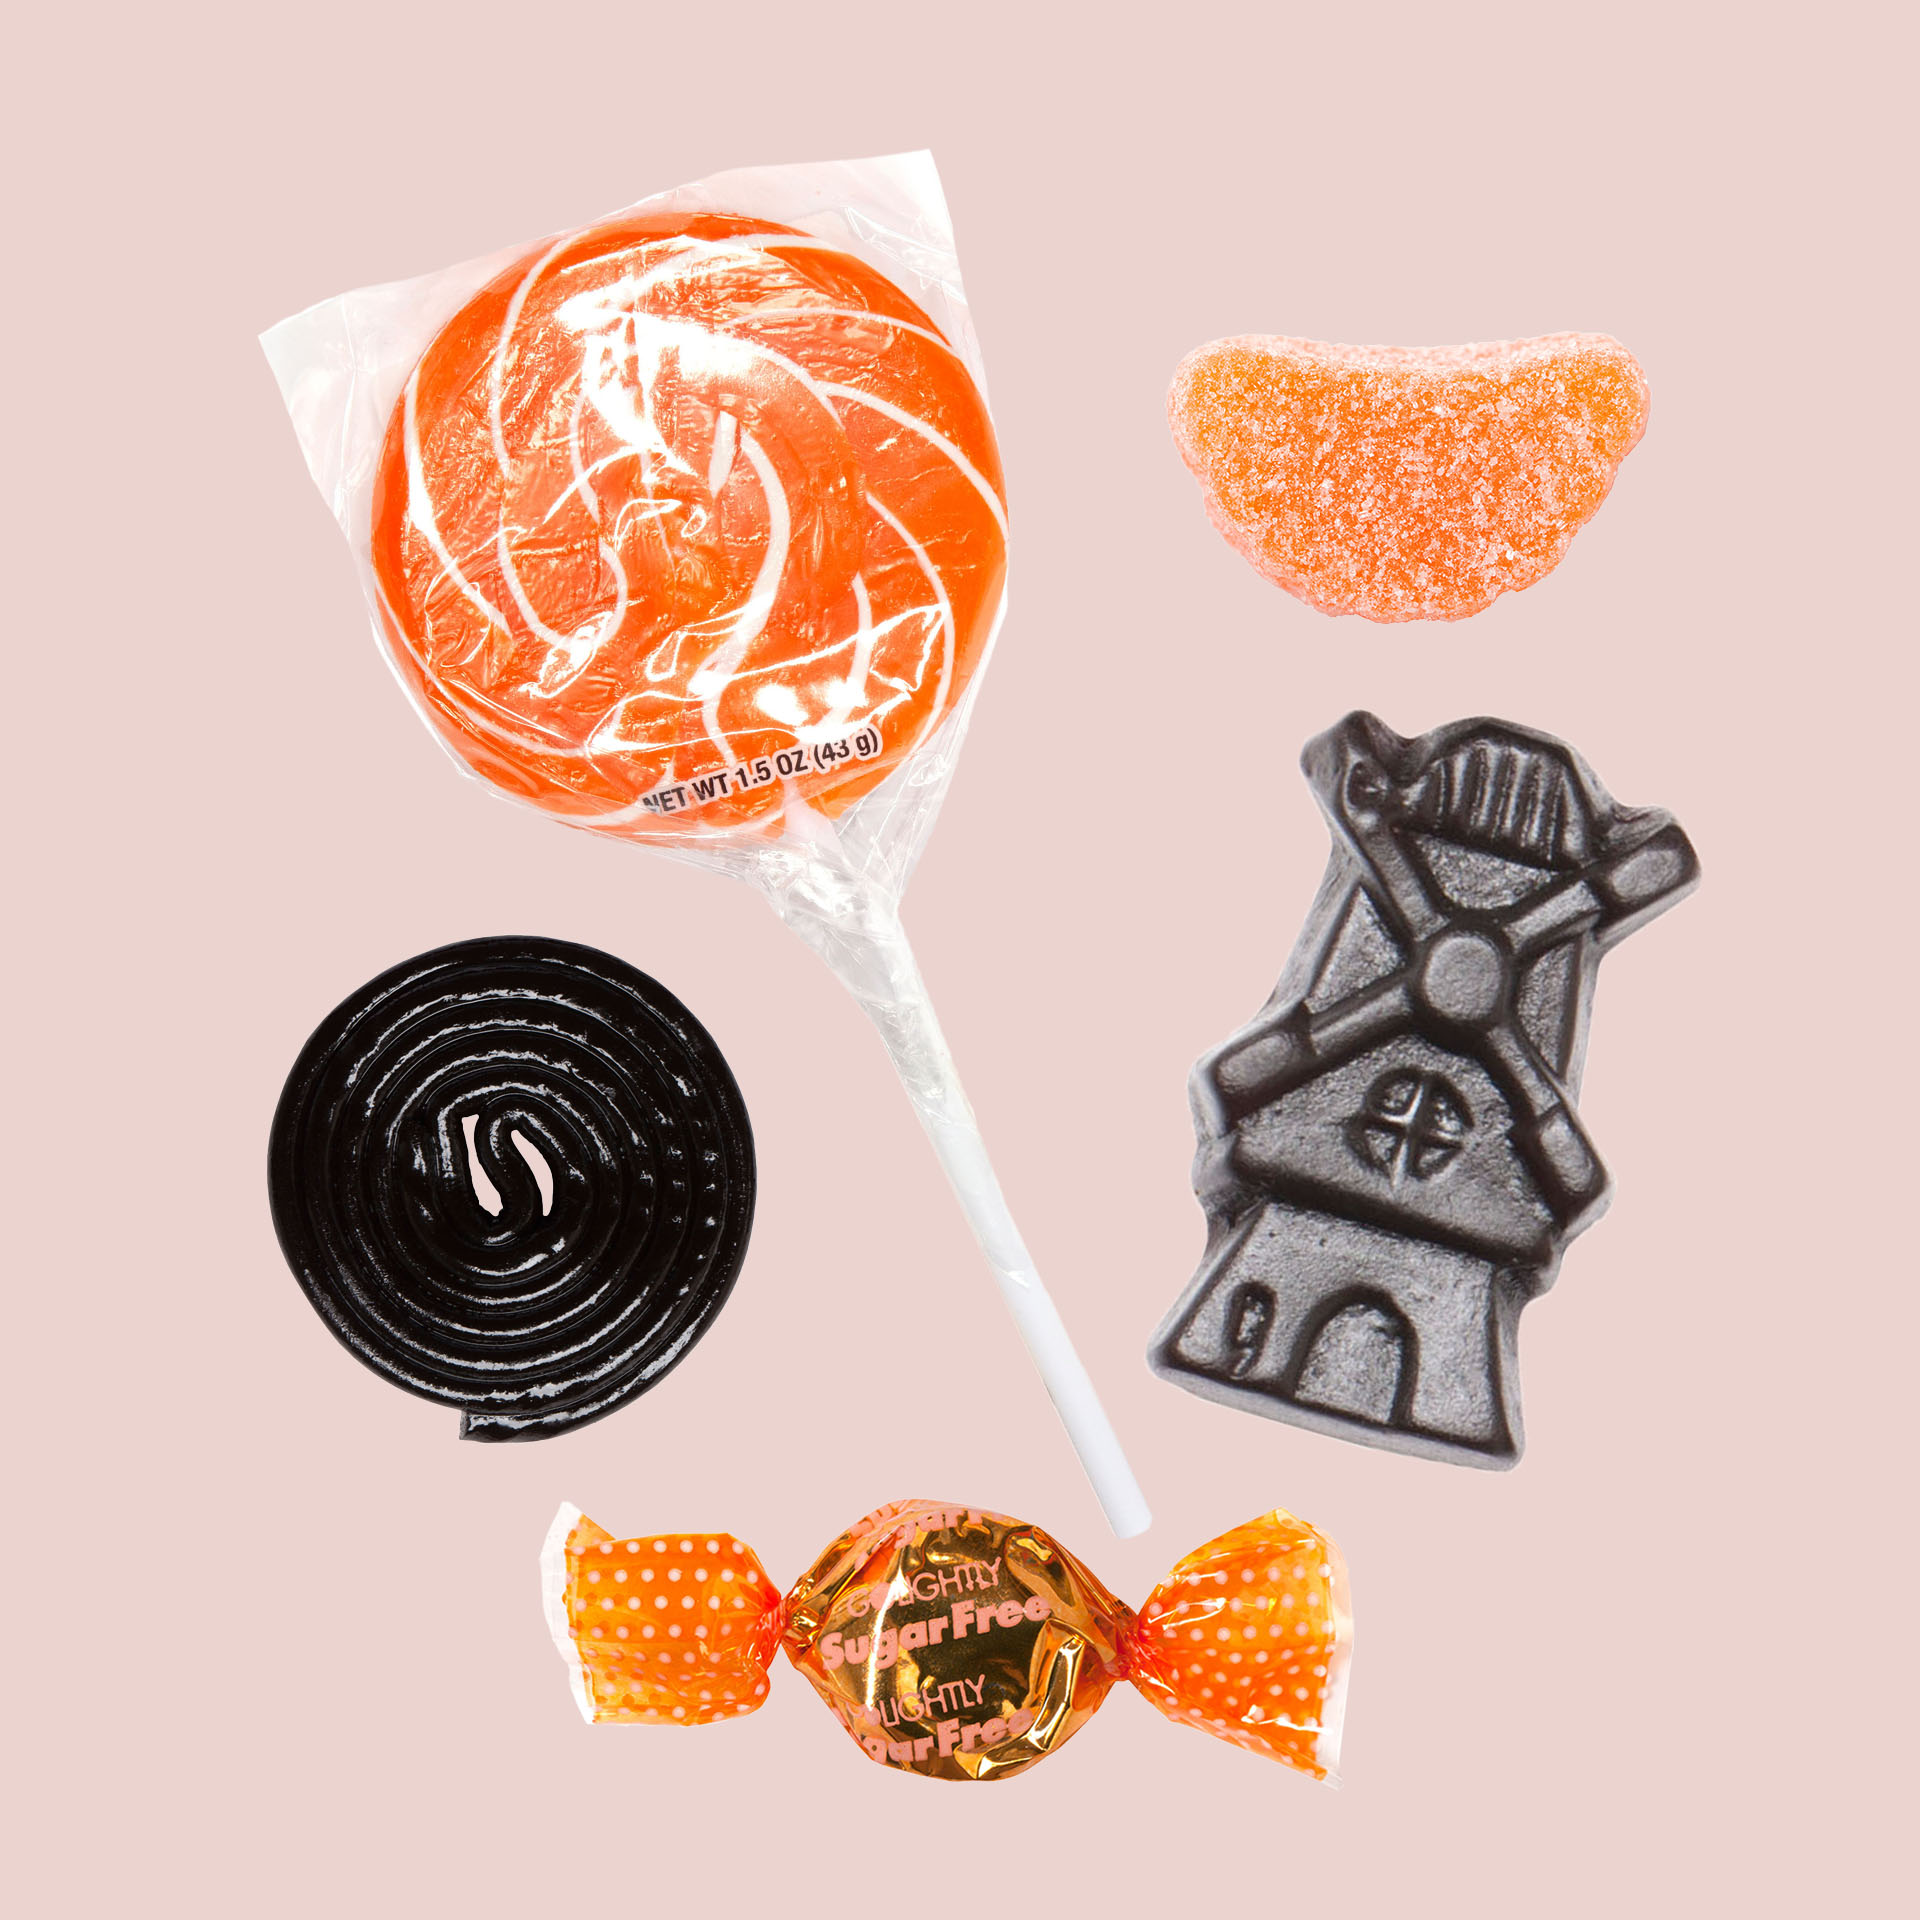 Halloween candy from Economy Candy